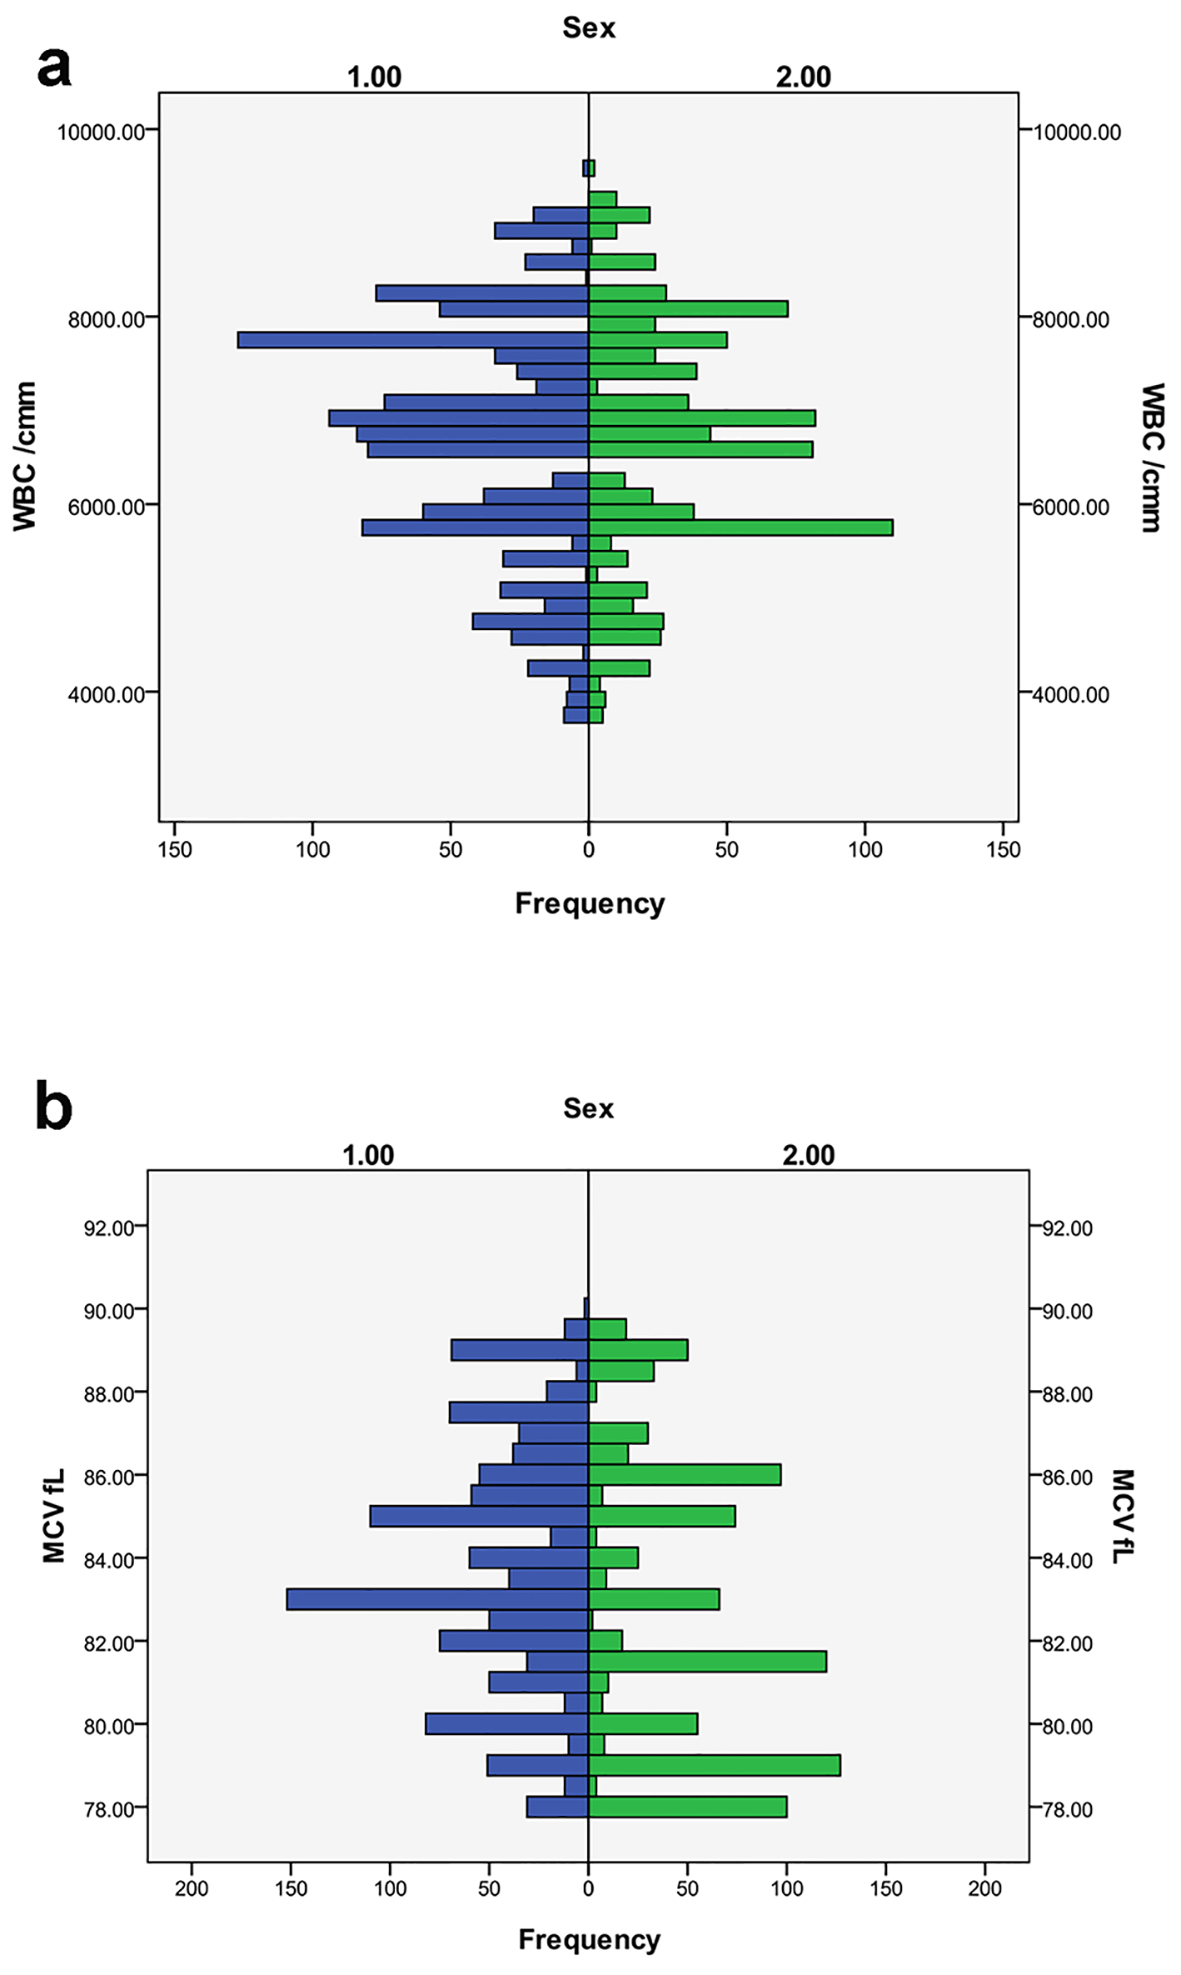 Reference Value Profile for Healthy Individuals From the